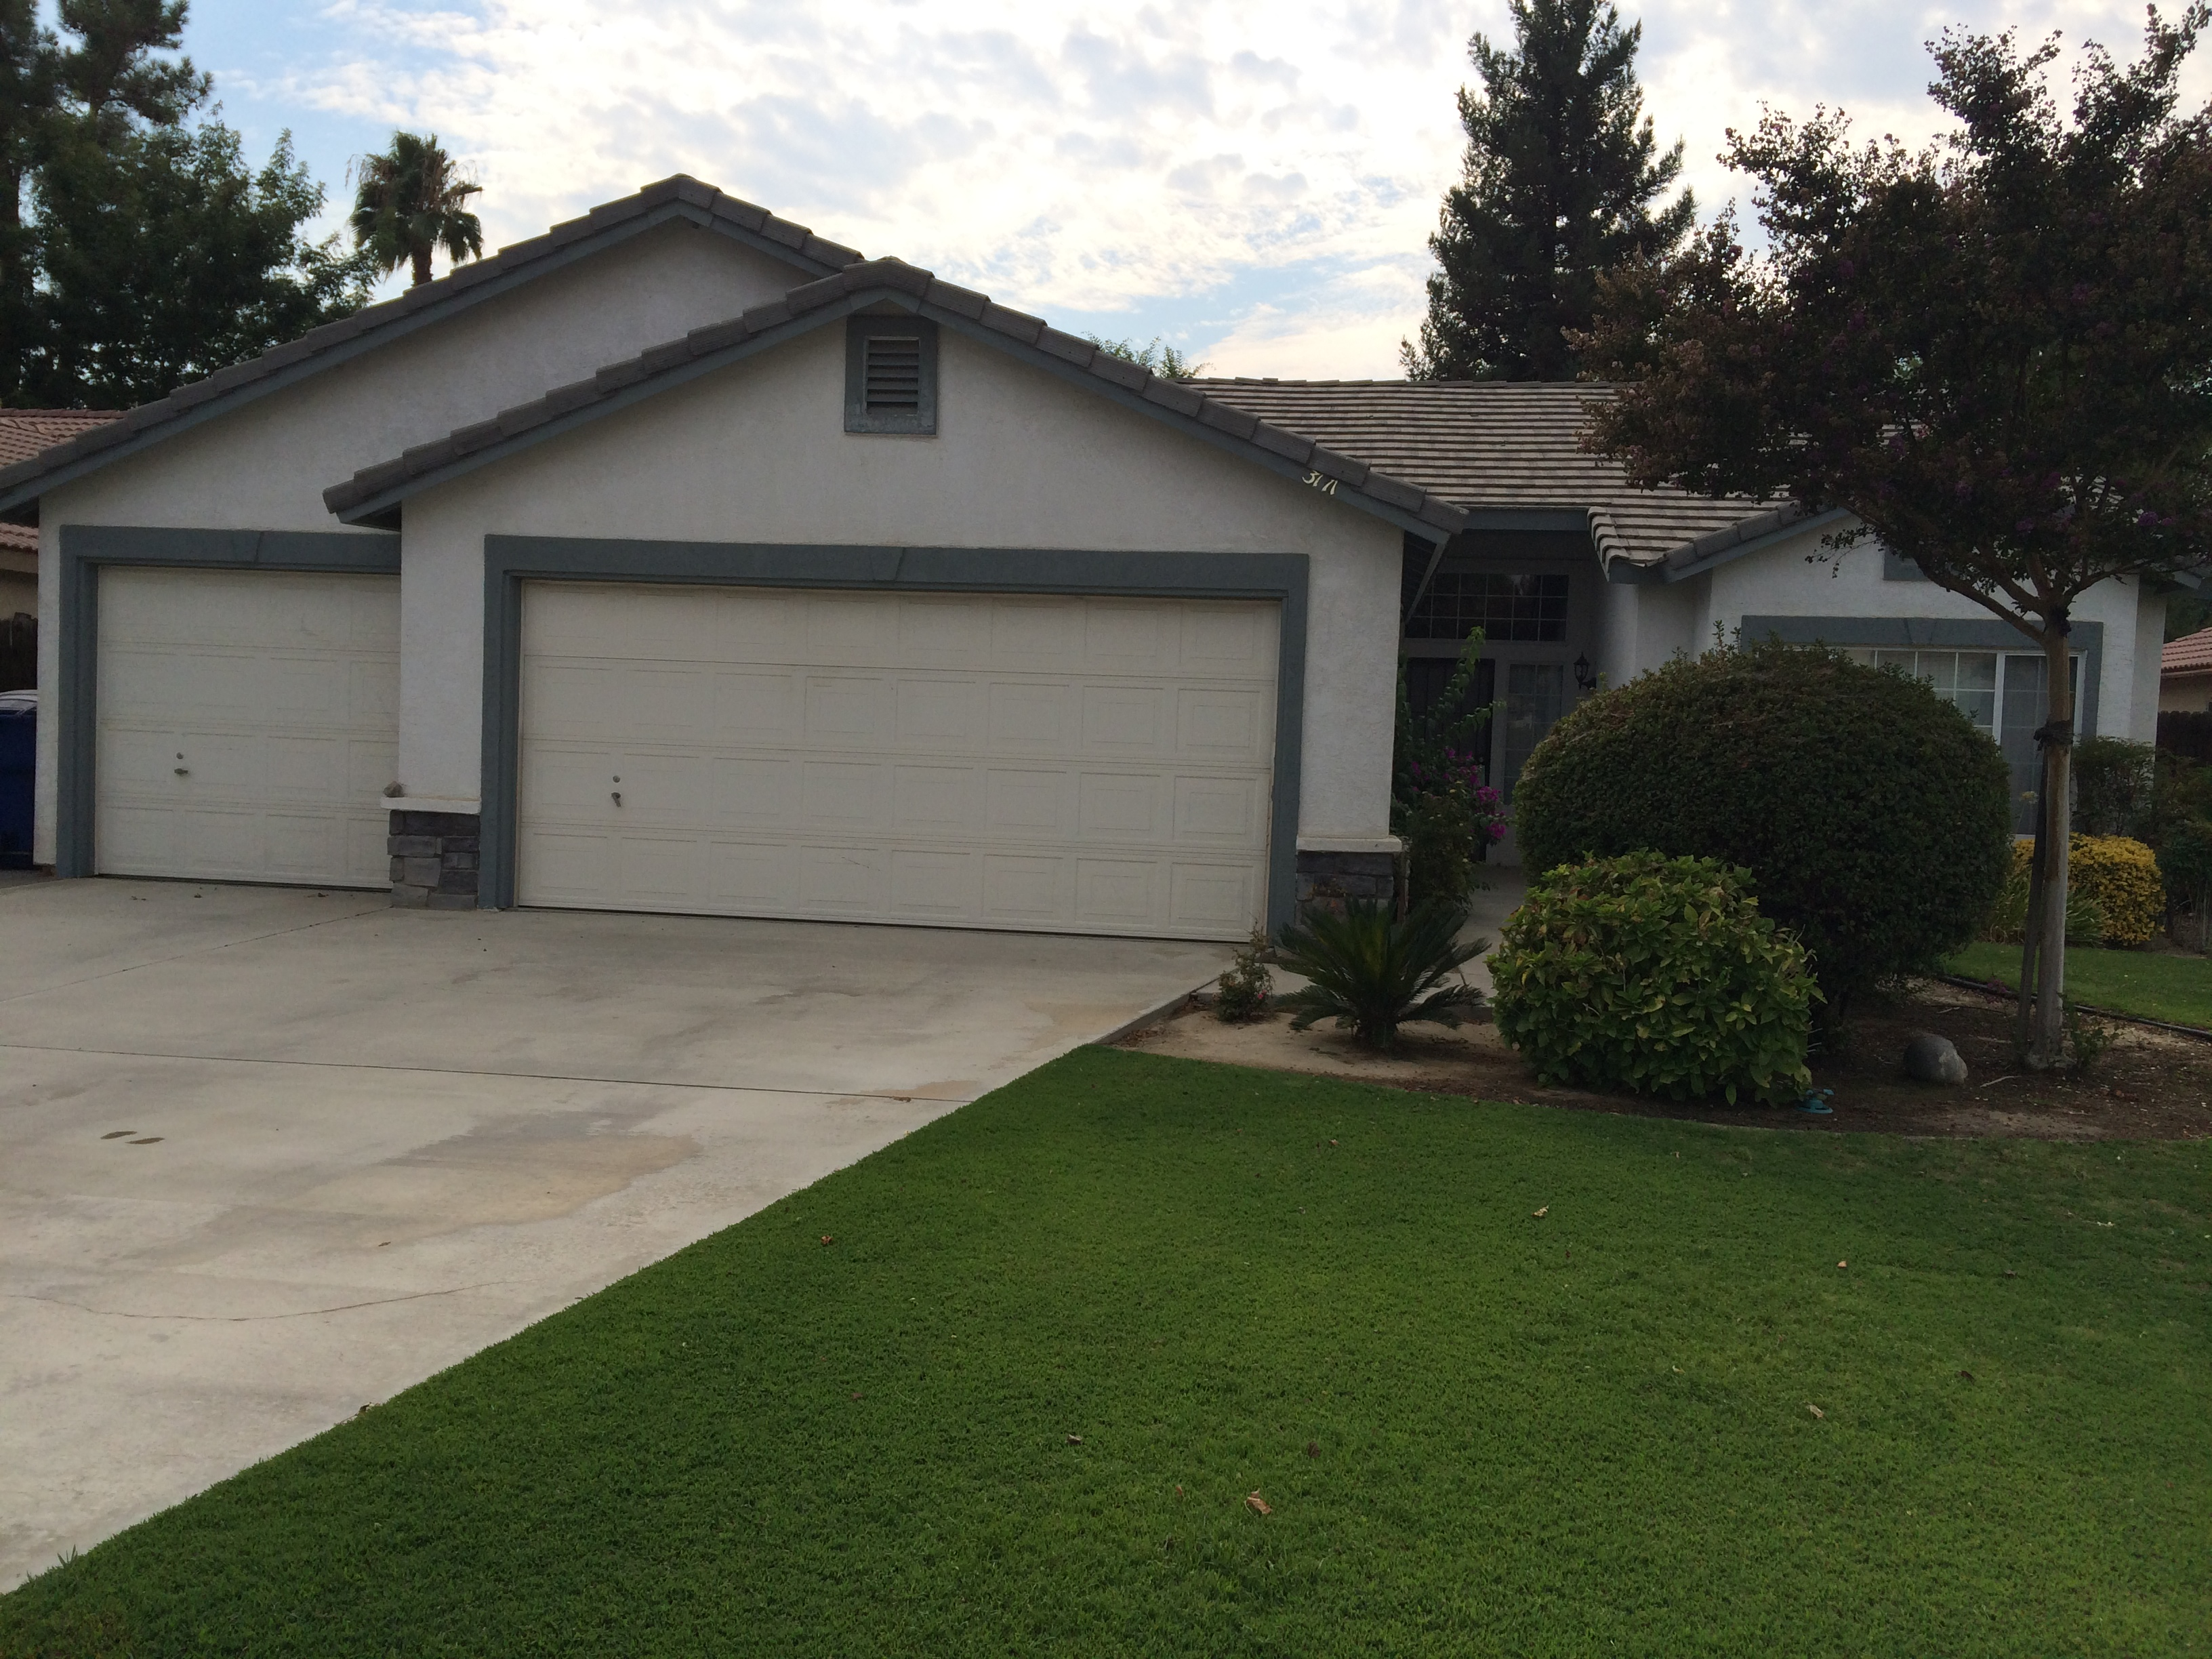 3711 Rancho Santa Fe St., Bakersfield, CA 93311 rented southwest home